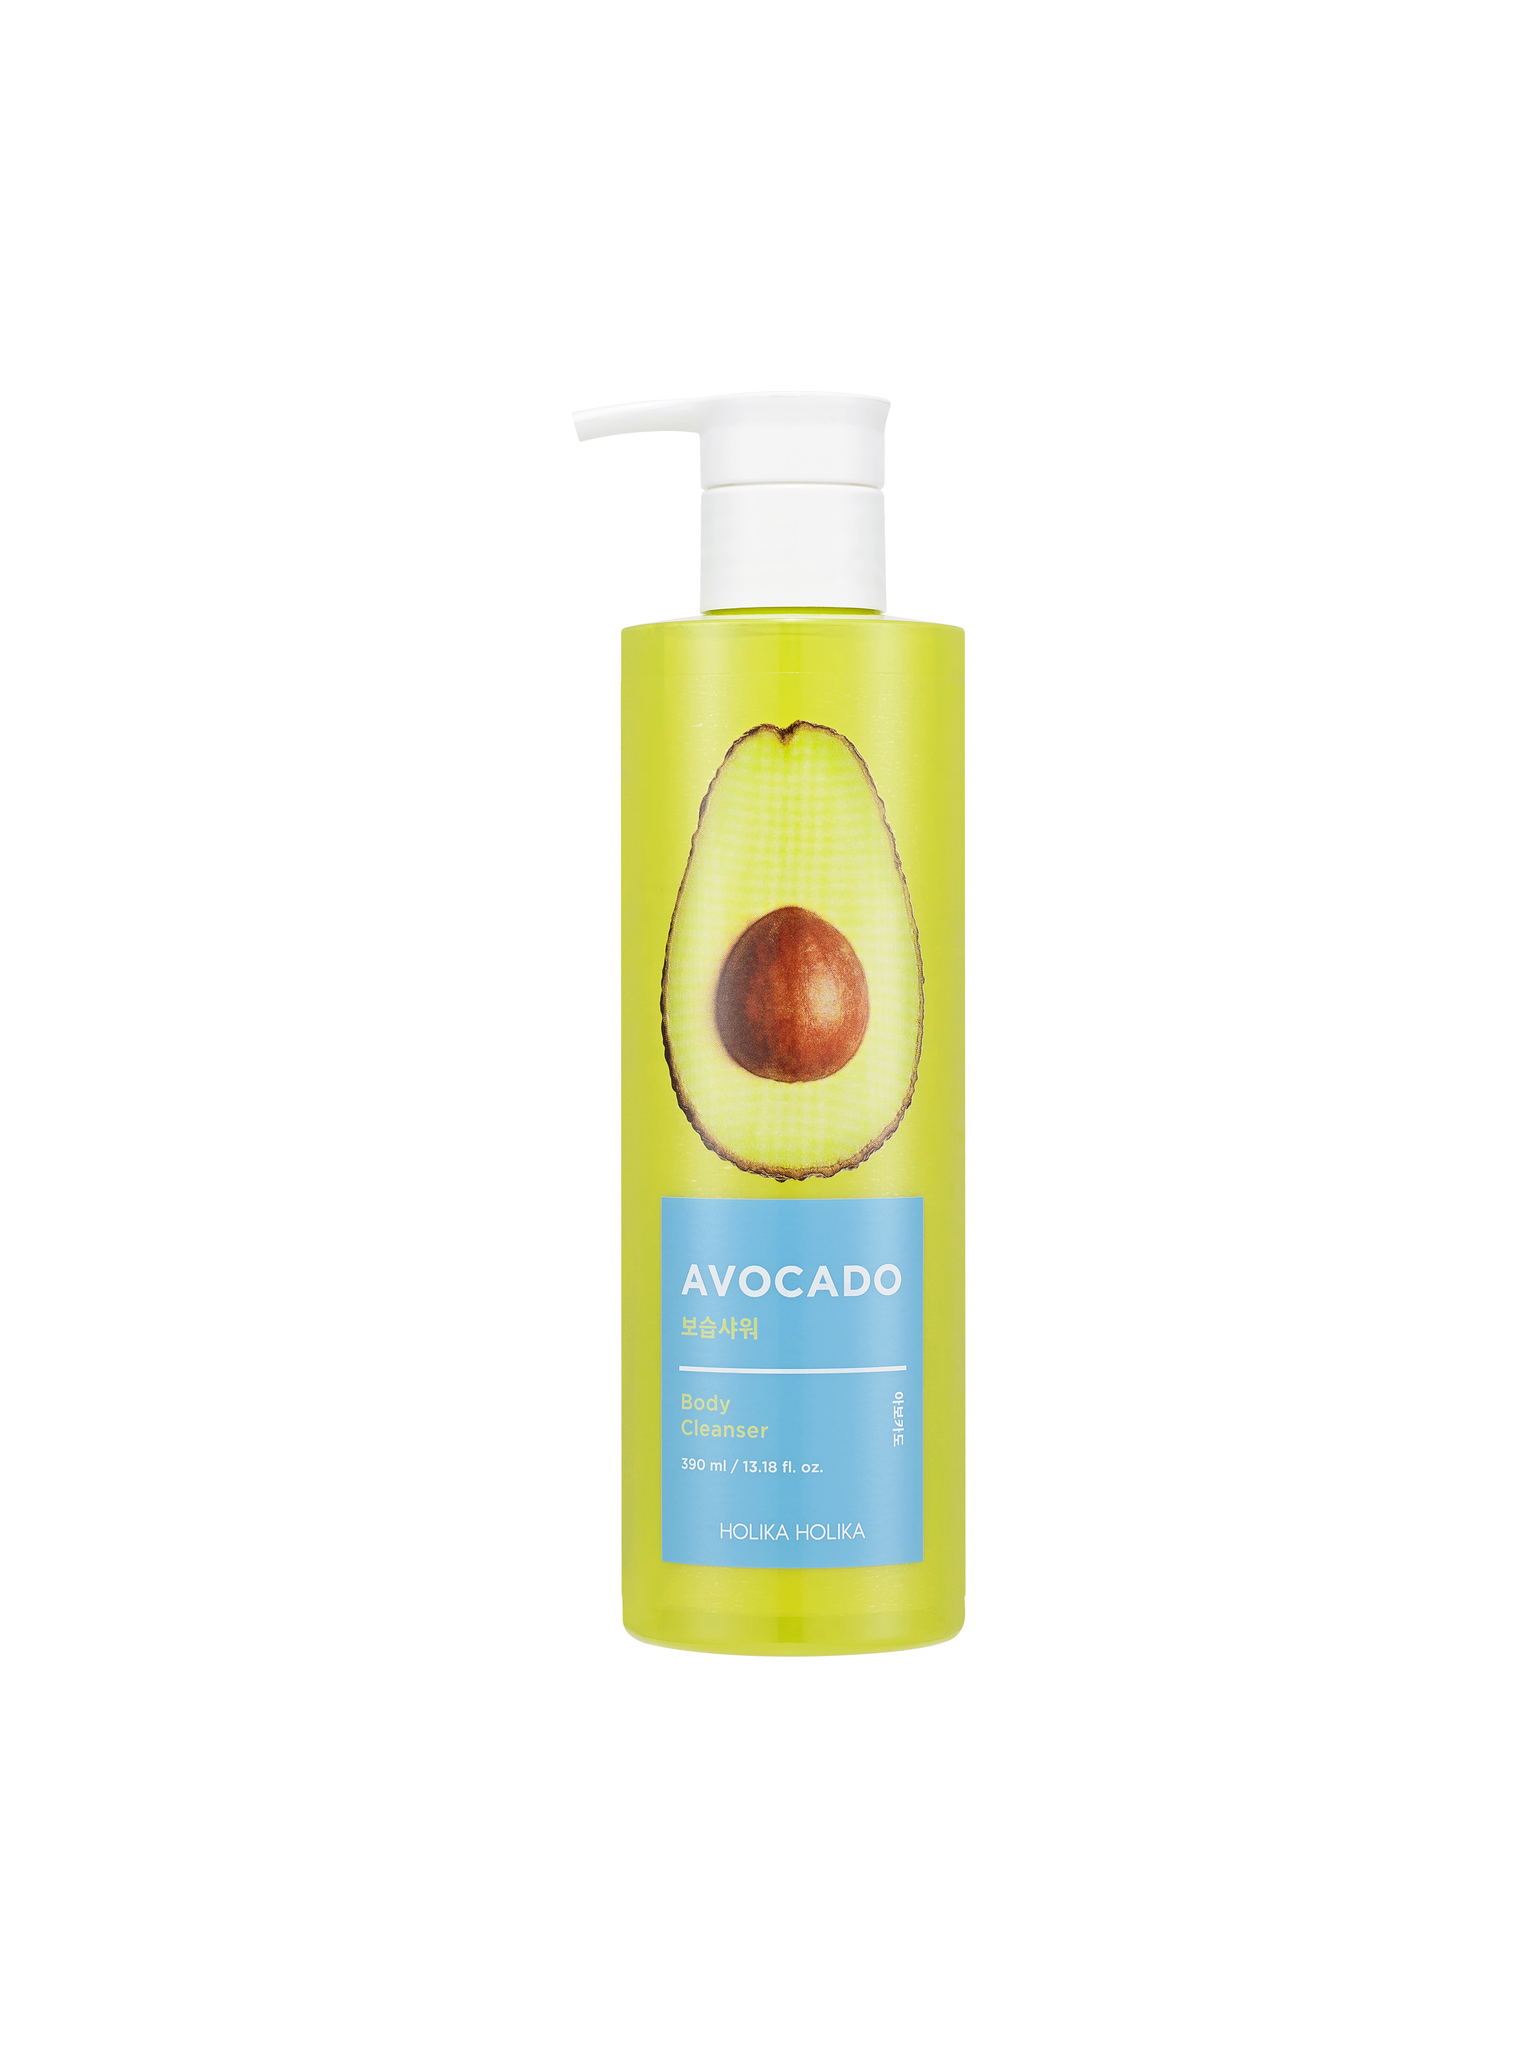 Гели для душа Гель для душа с авокадо, HOLIKA HOLIKA, Avocado Body Cleanser 390мл 2291-8806334371722.jpg